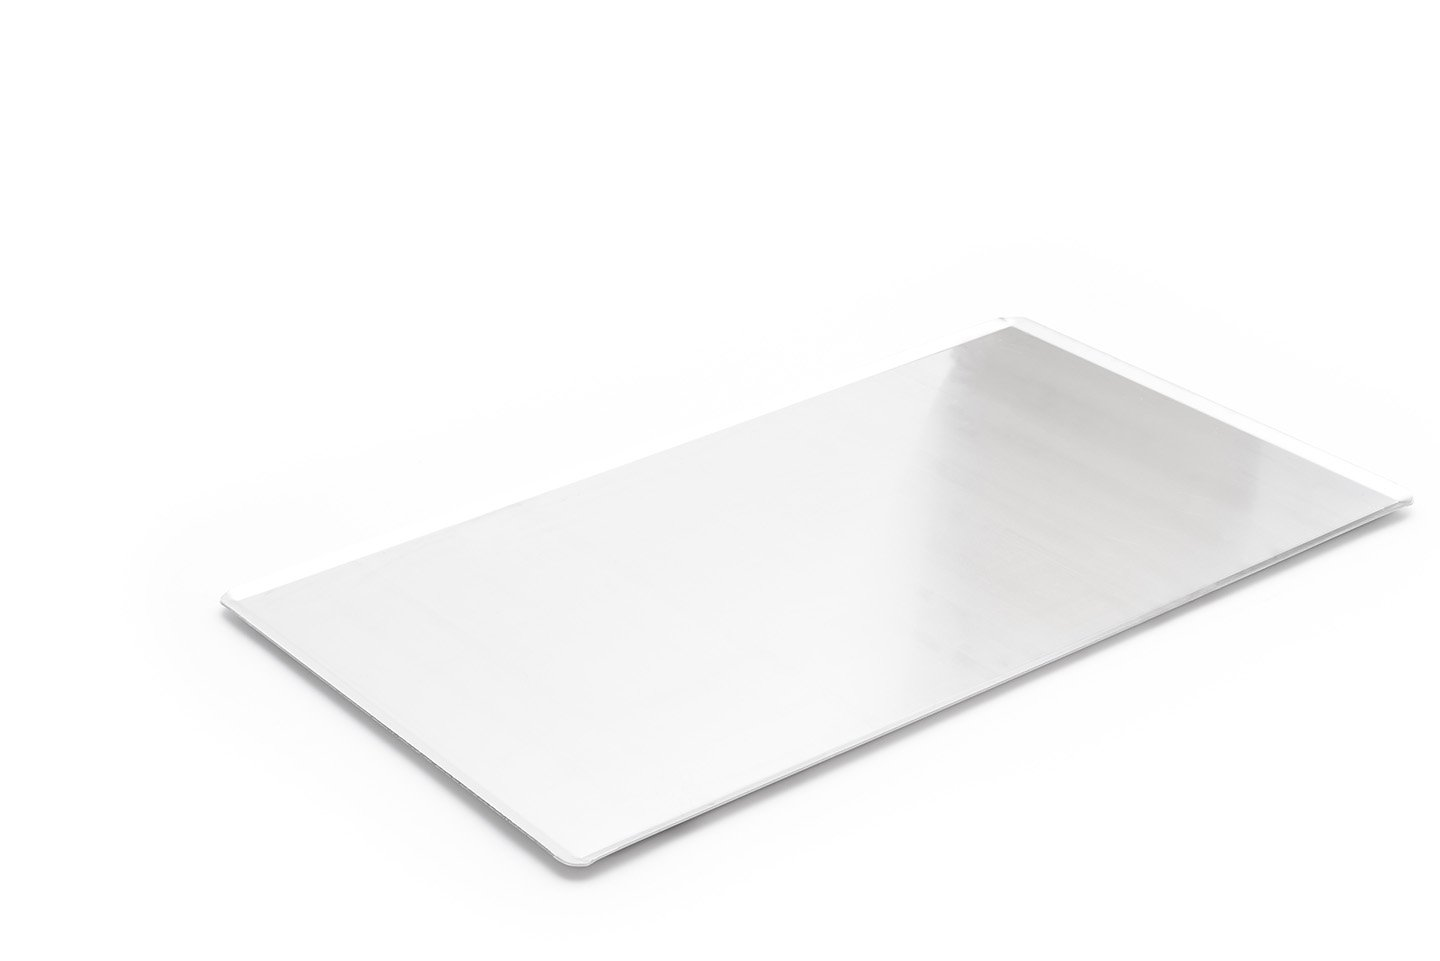 3-sided Plain Baking Tray – AMERICOAT® Coating